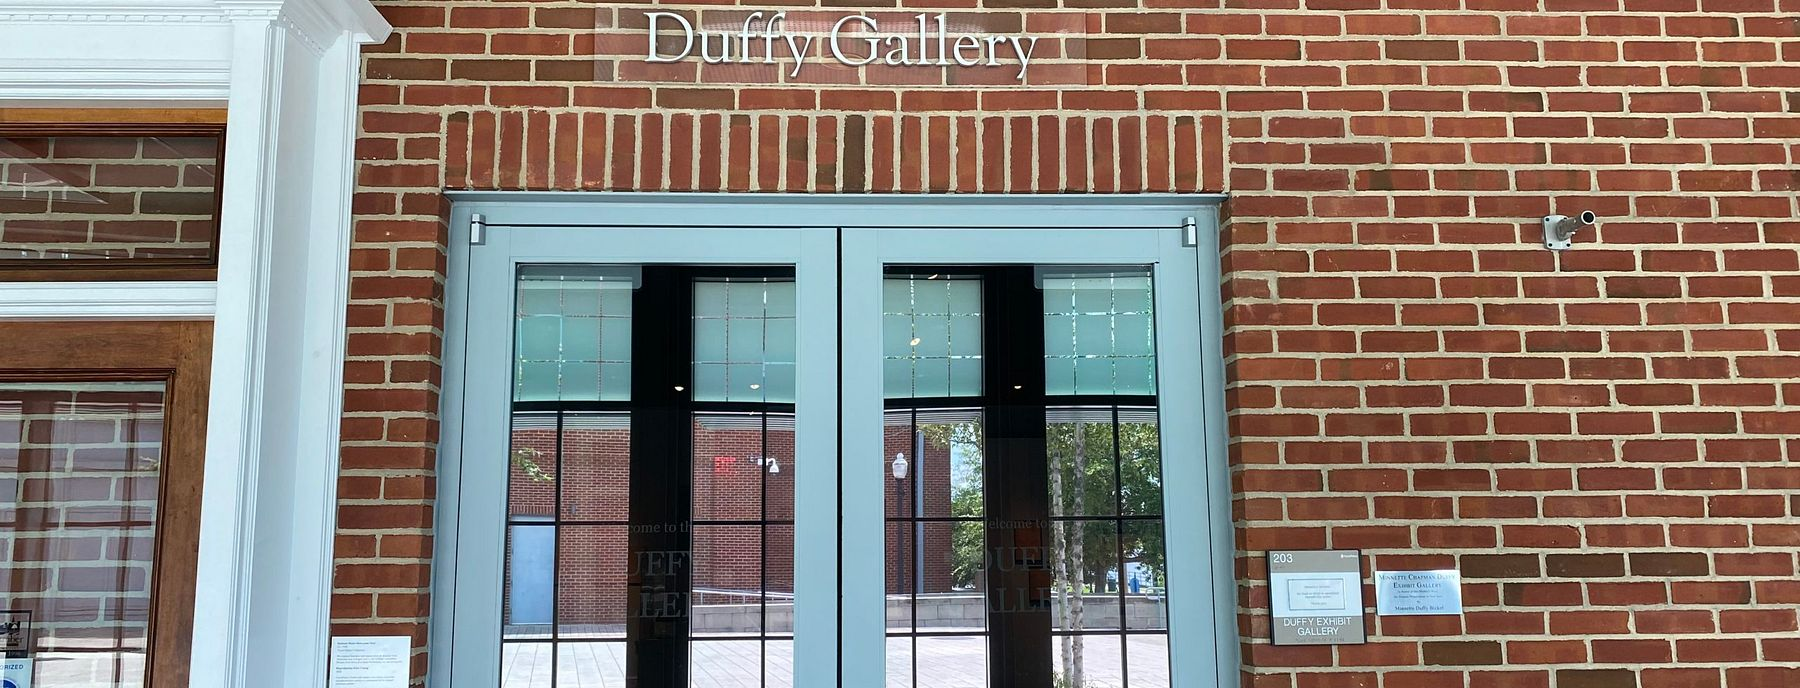 Entrance to the Duffy Gallery